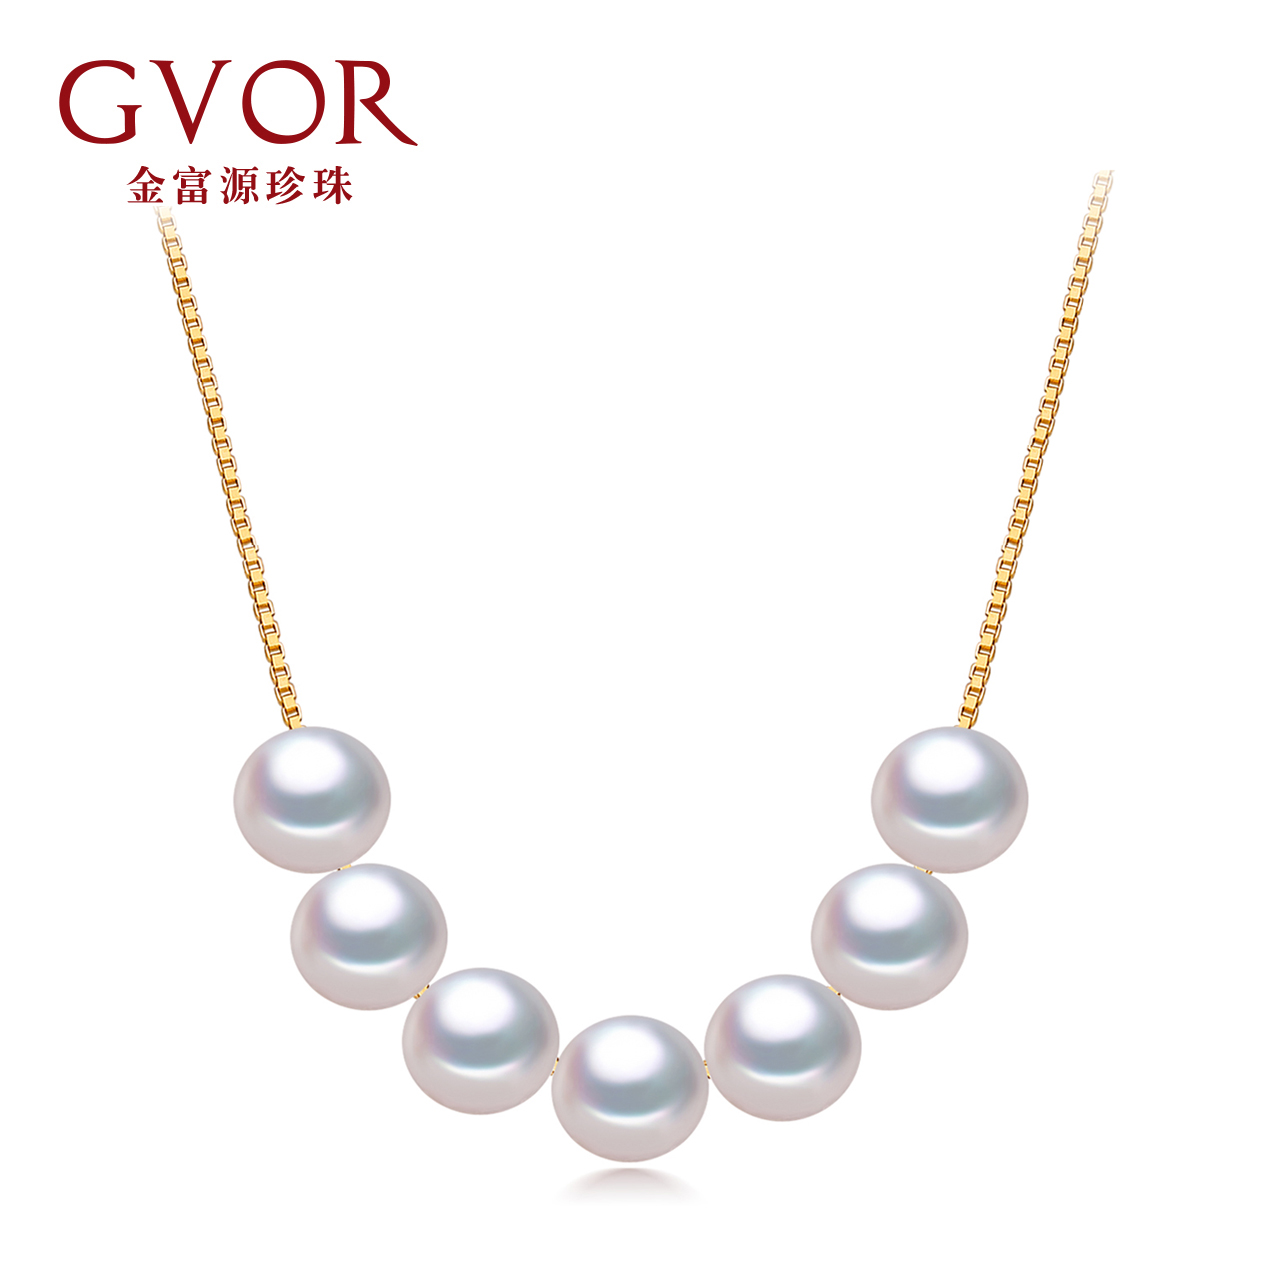 Fuyuan jewelry sevené¢6-11mm 7MM nearly round freshwater pearl pendant pearl 925 silver pendant